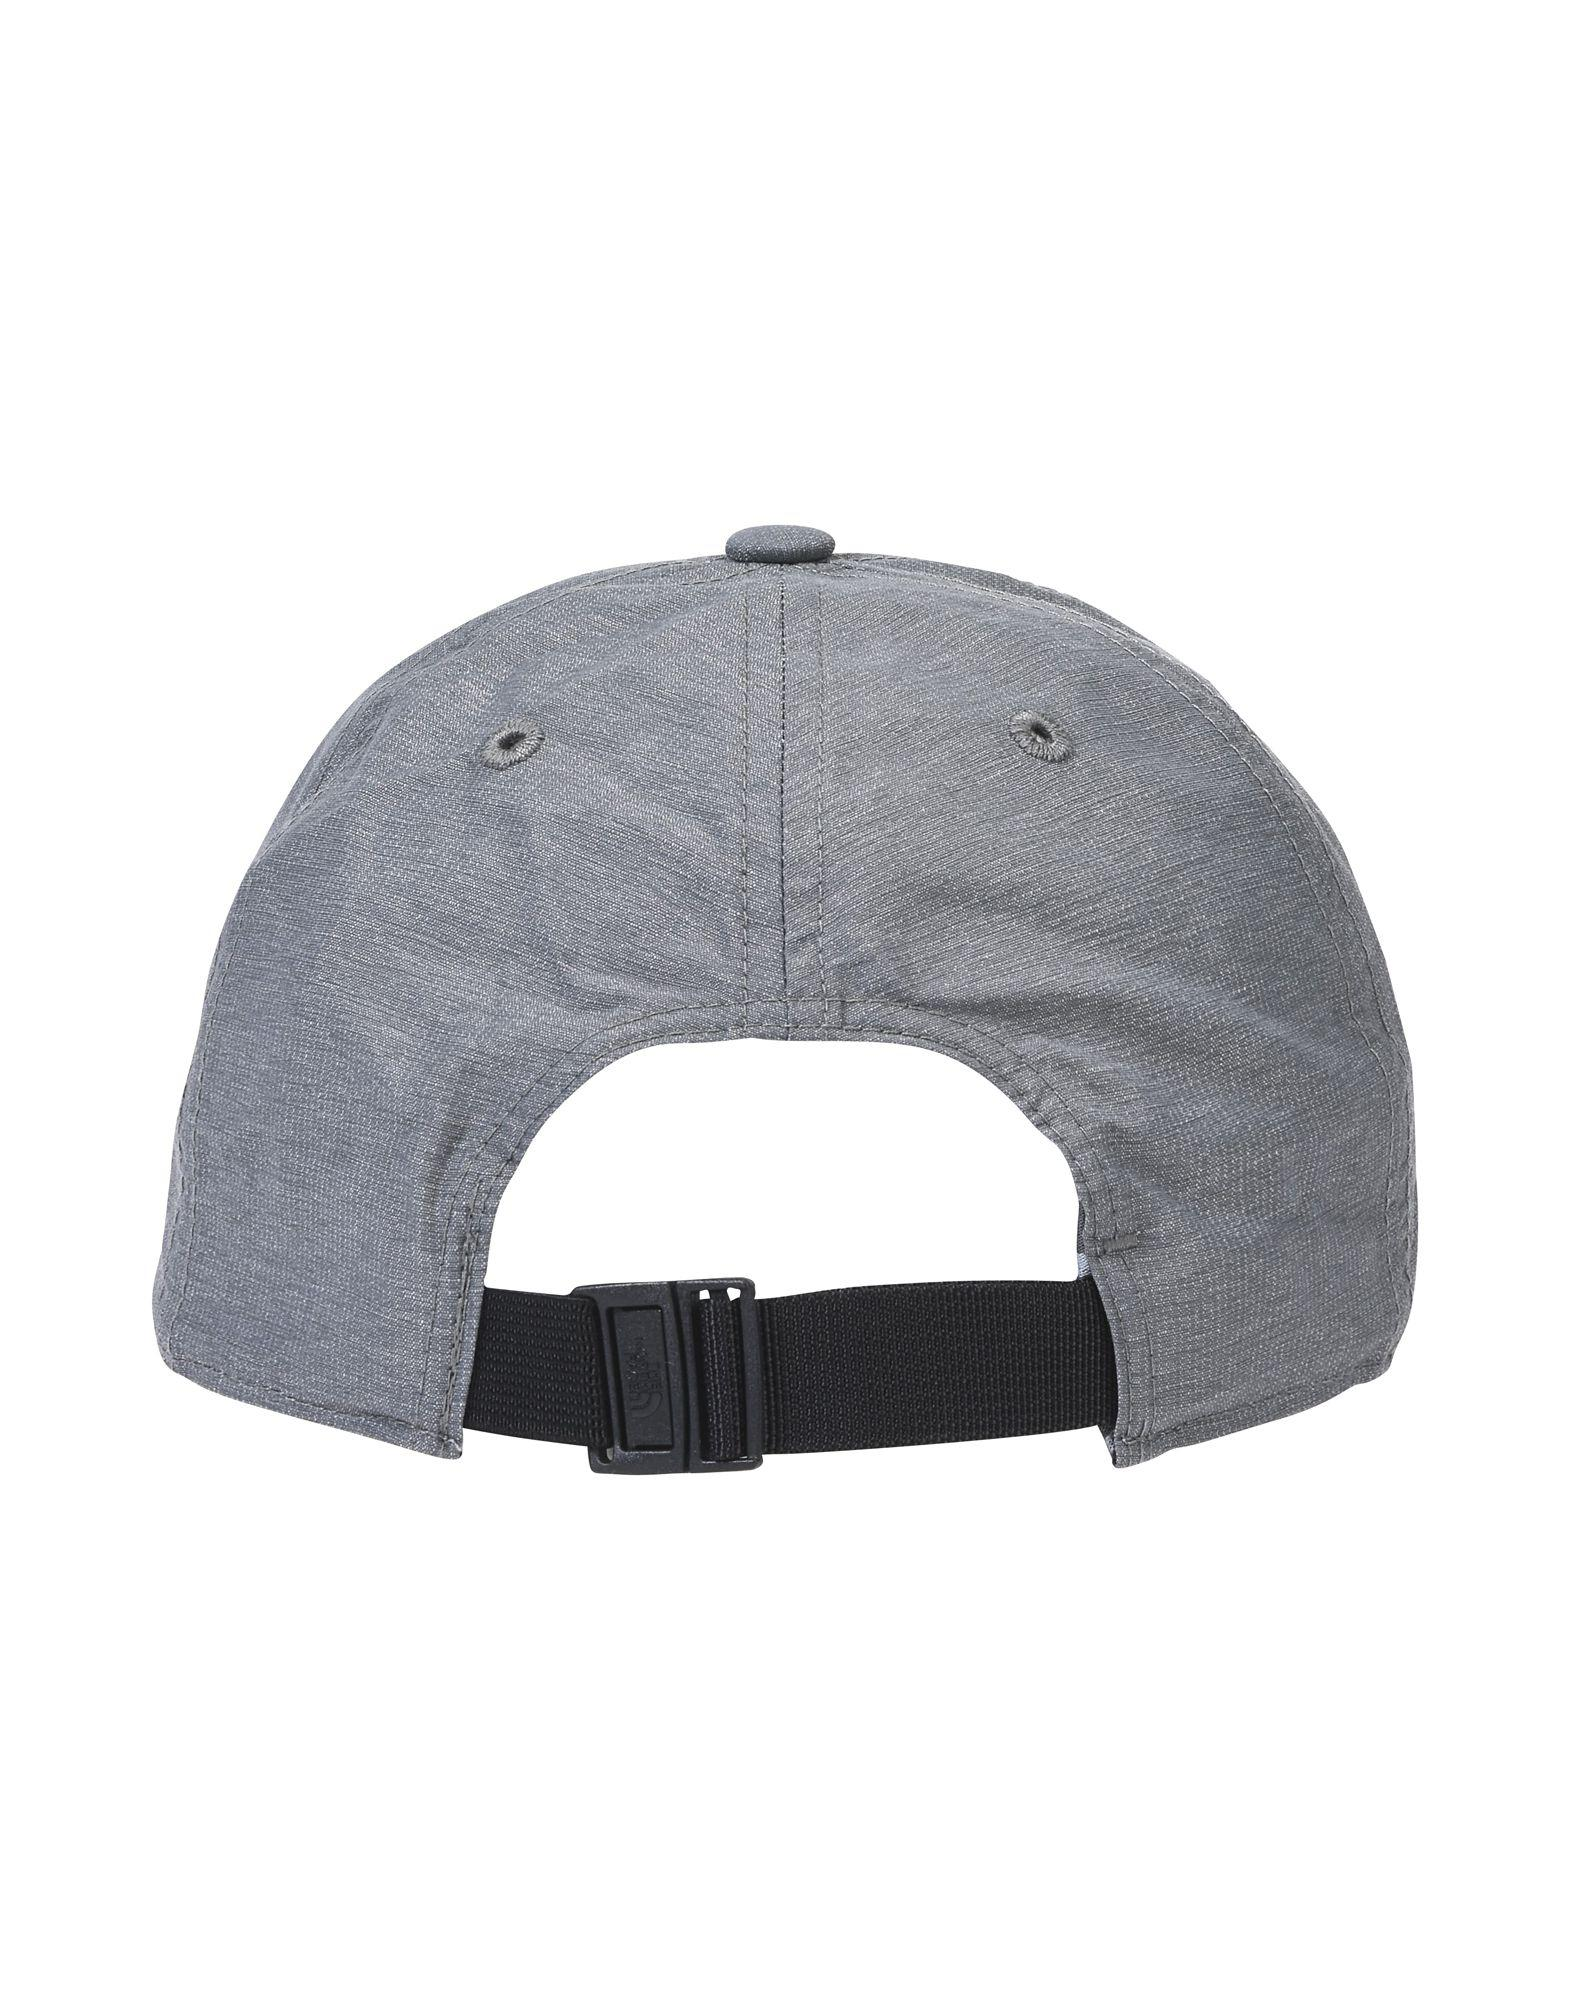 66dc848a03f The North Face Hat in Gray for Men - Lyst